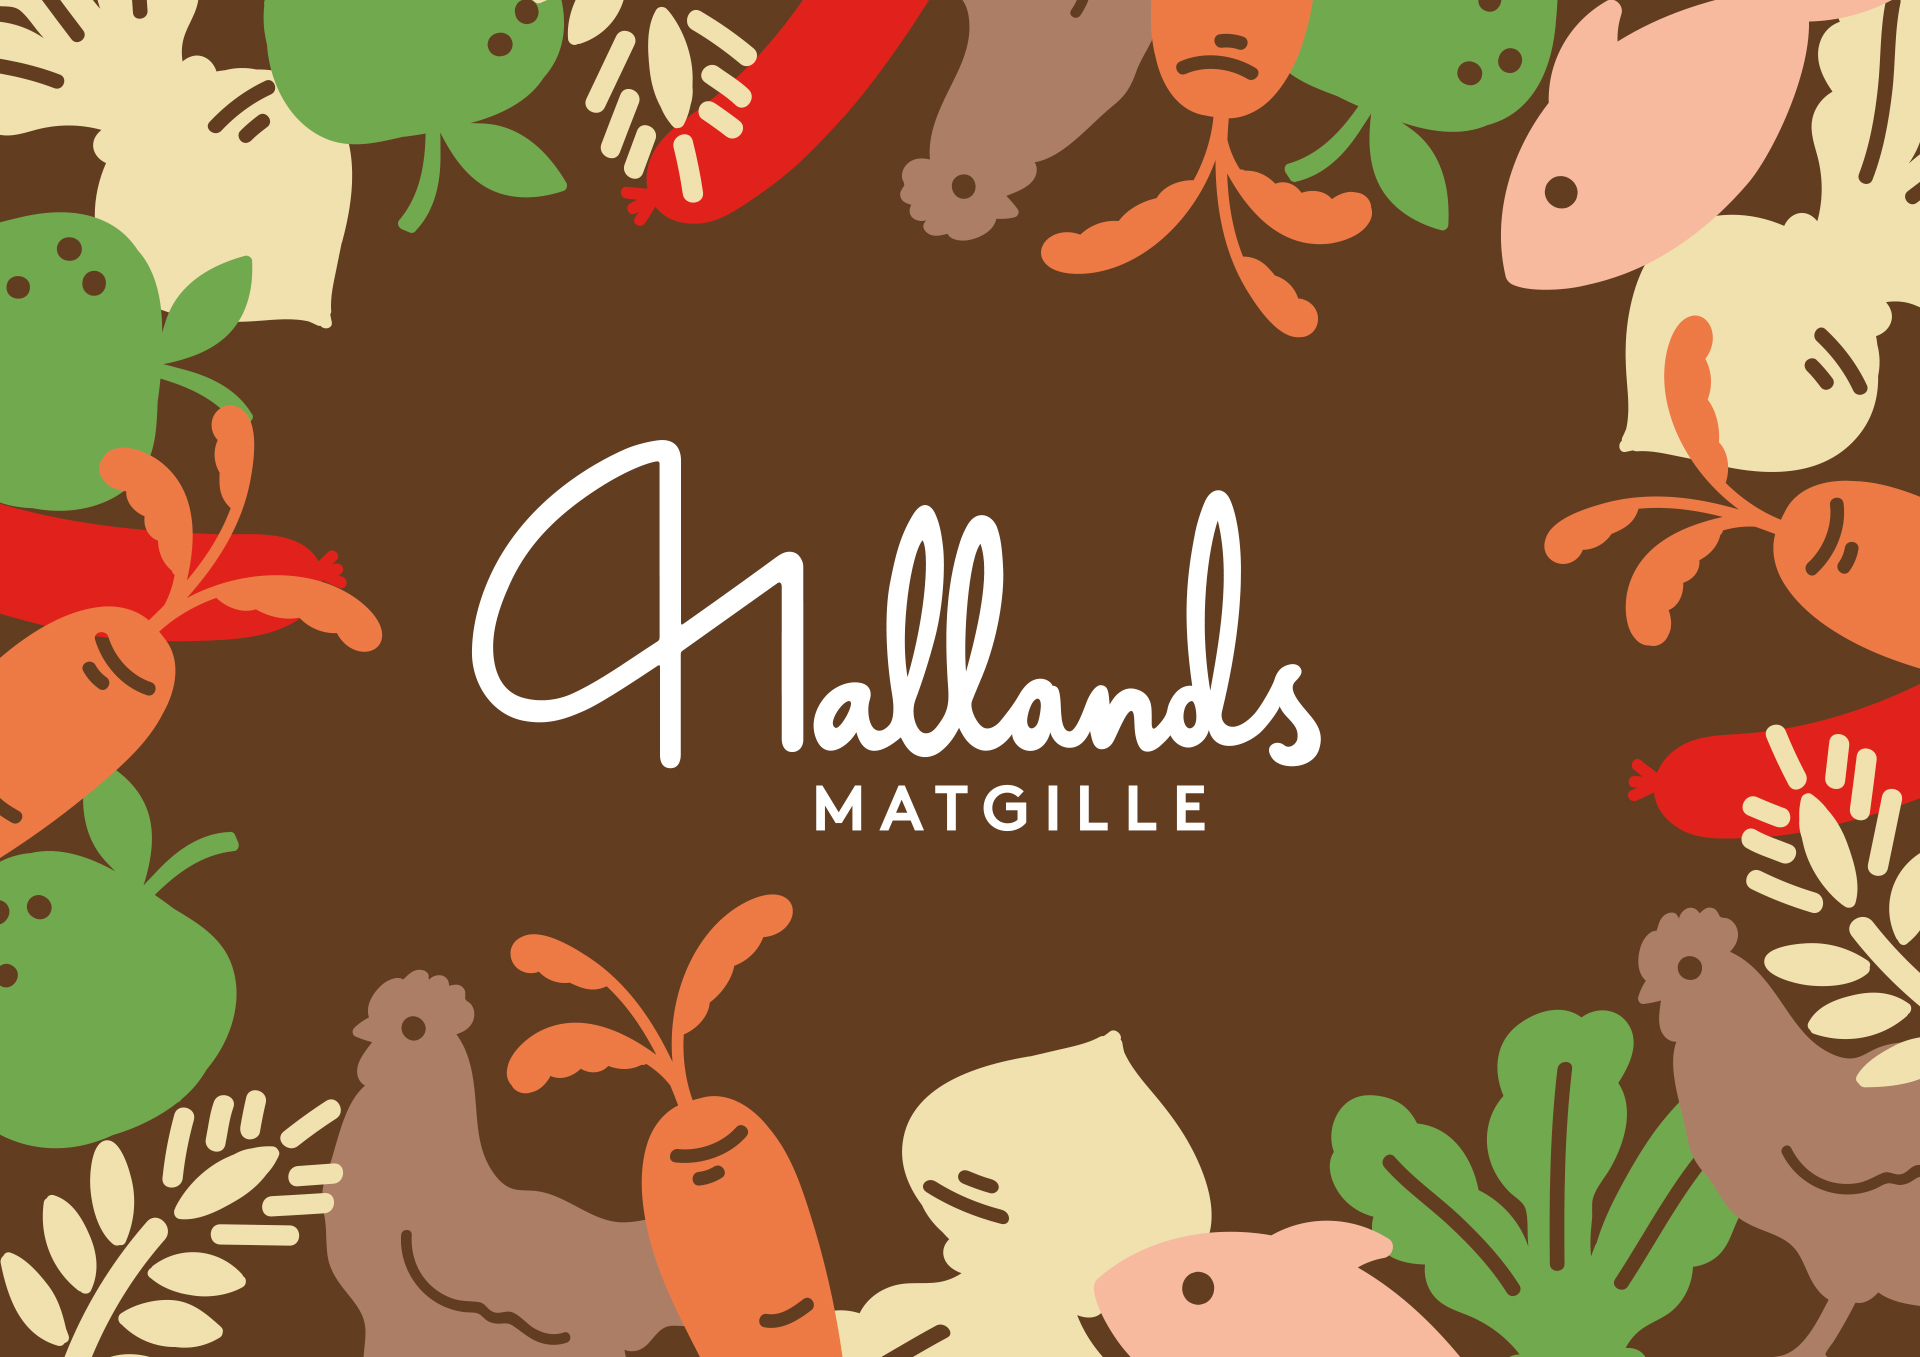 Hallands_Matgille_6_Case_Image_1920x1357